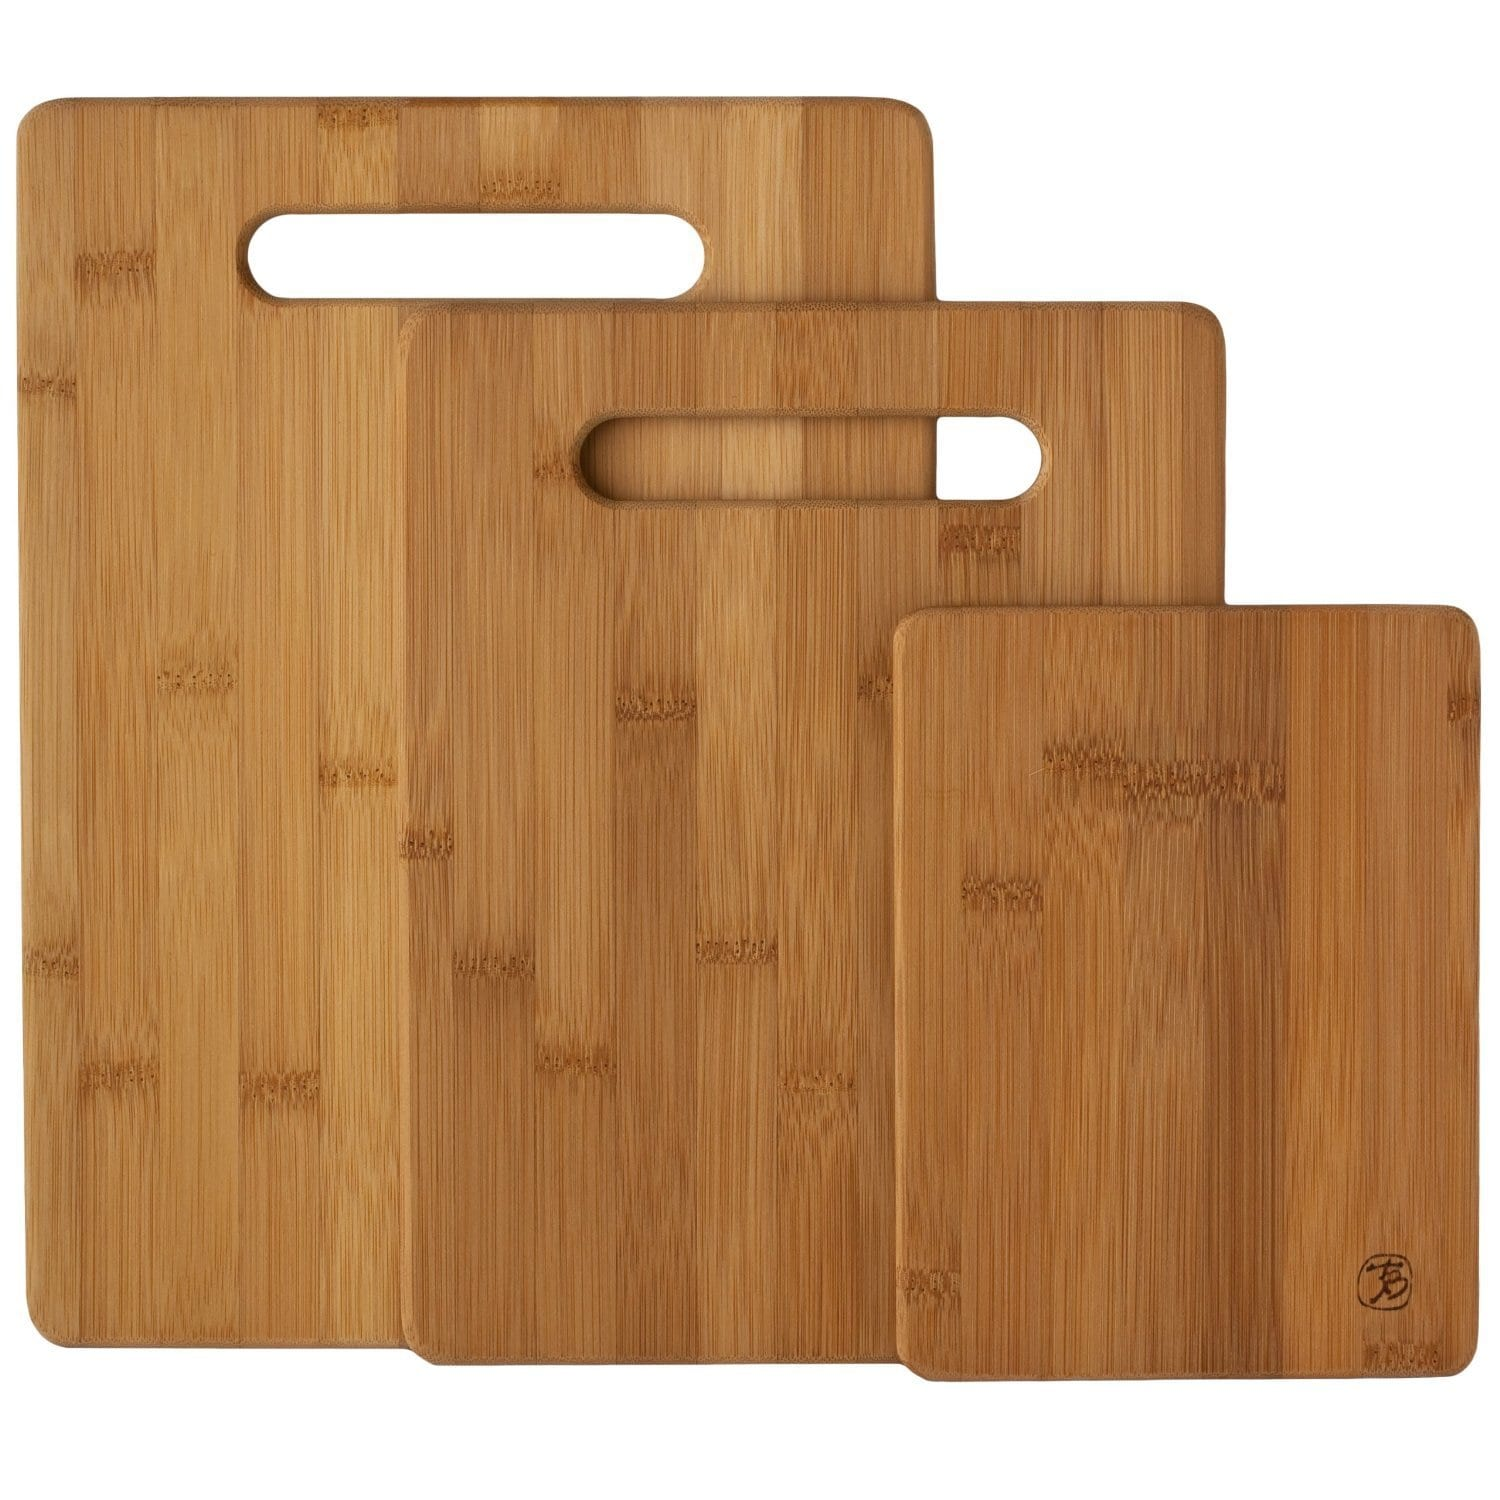 Totally Bamboo Cutting and Chopping board